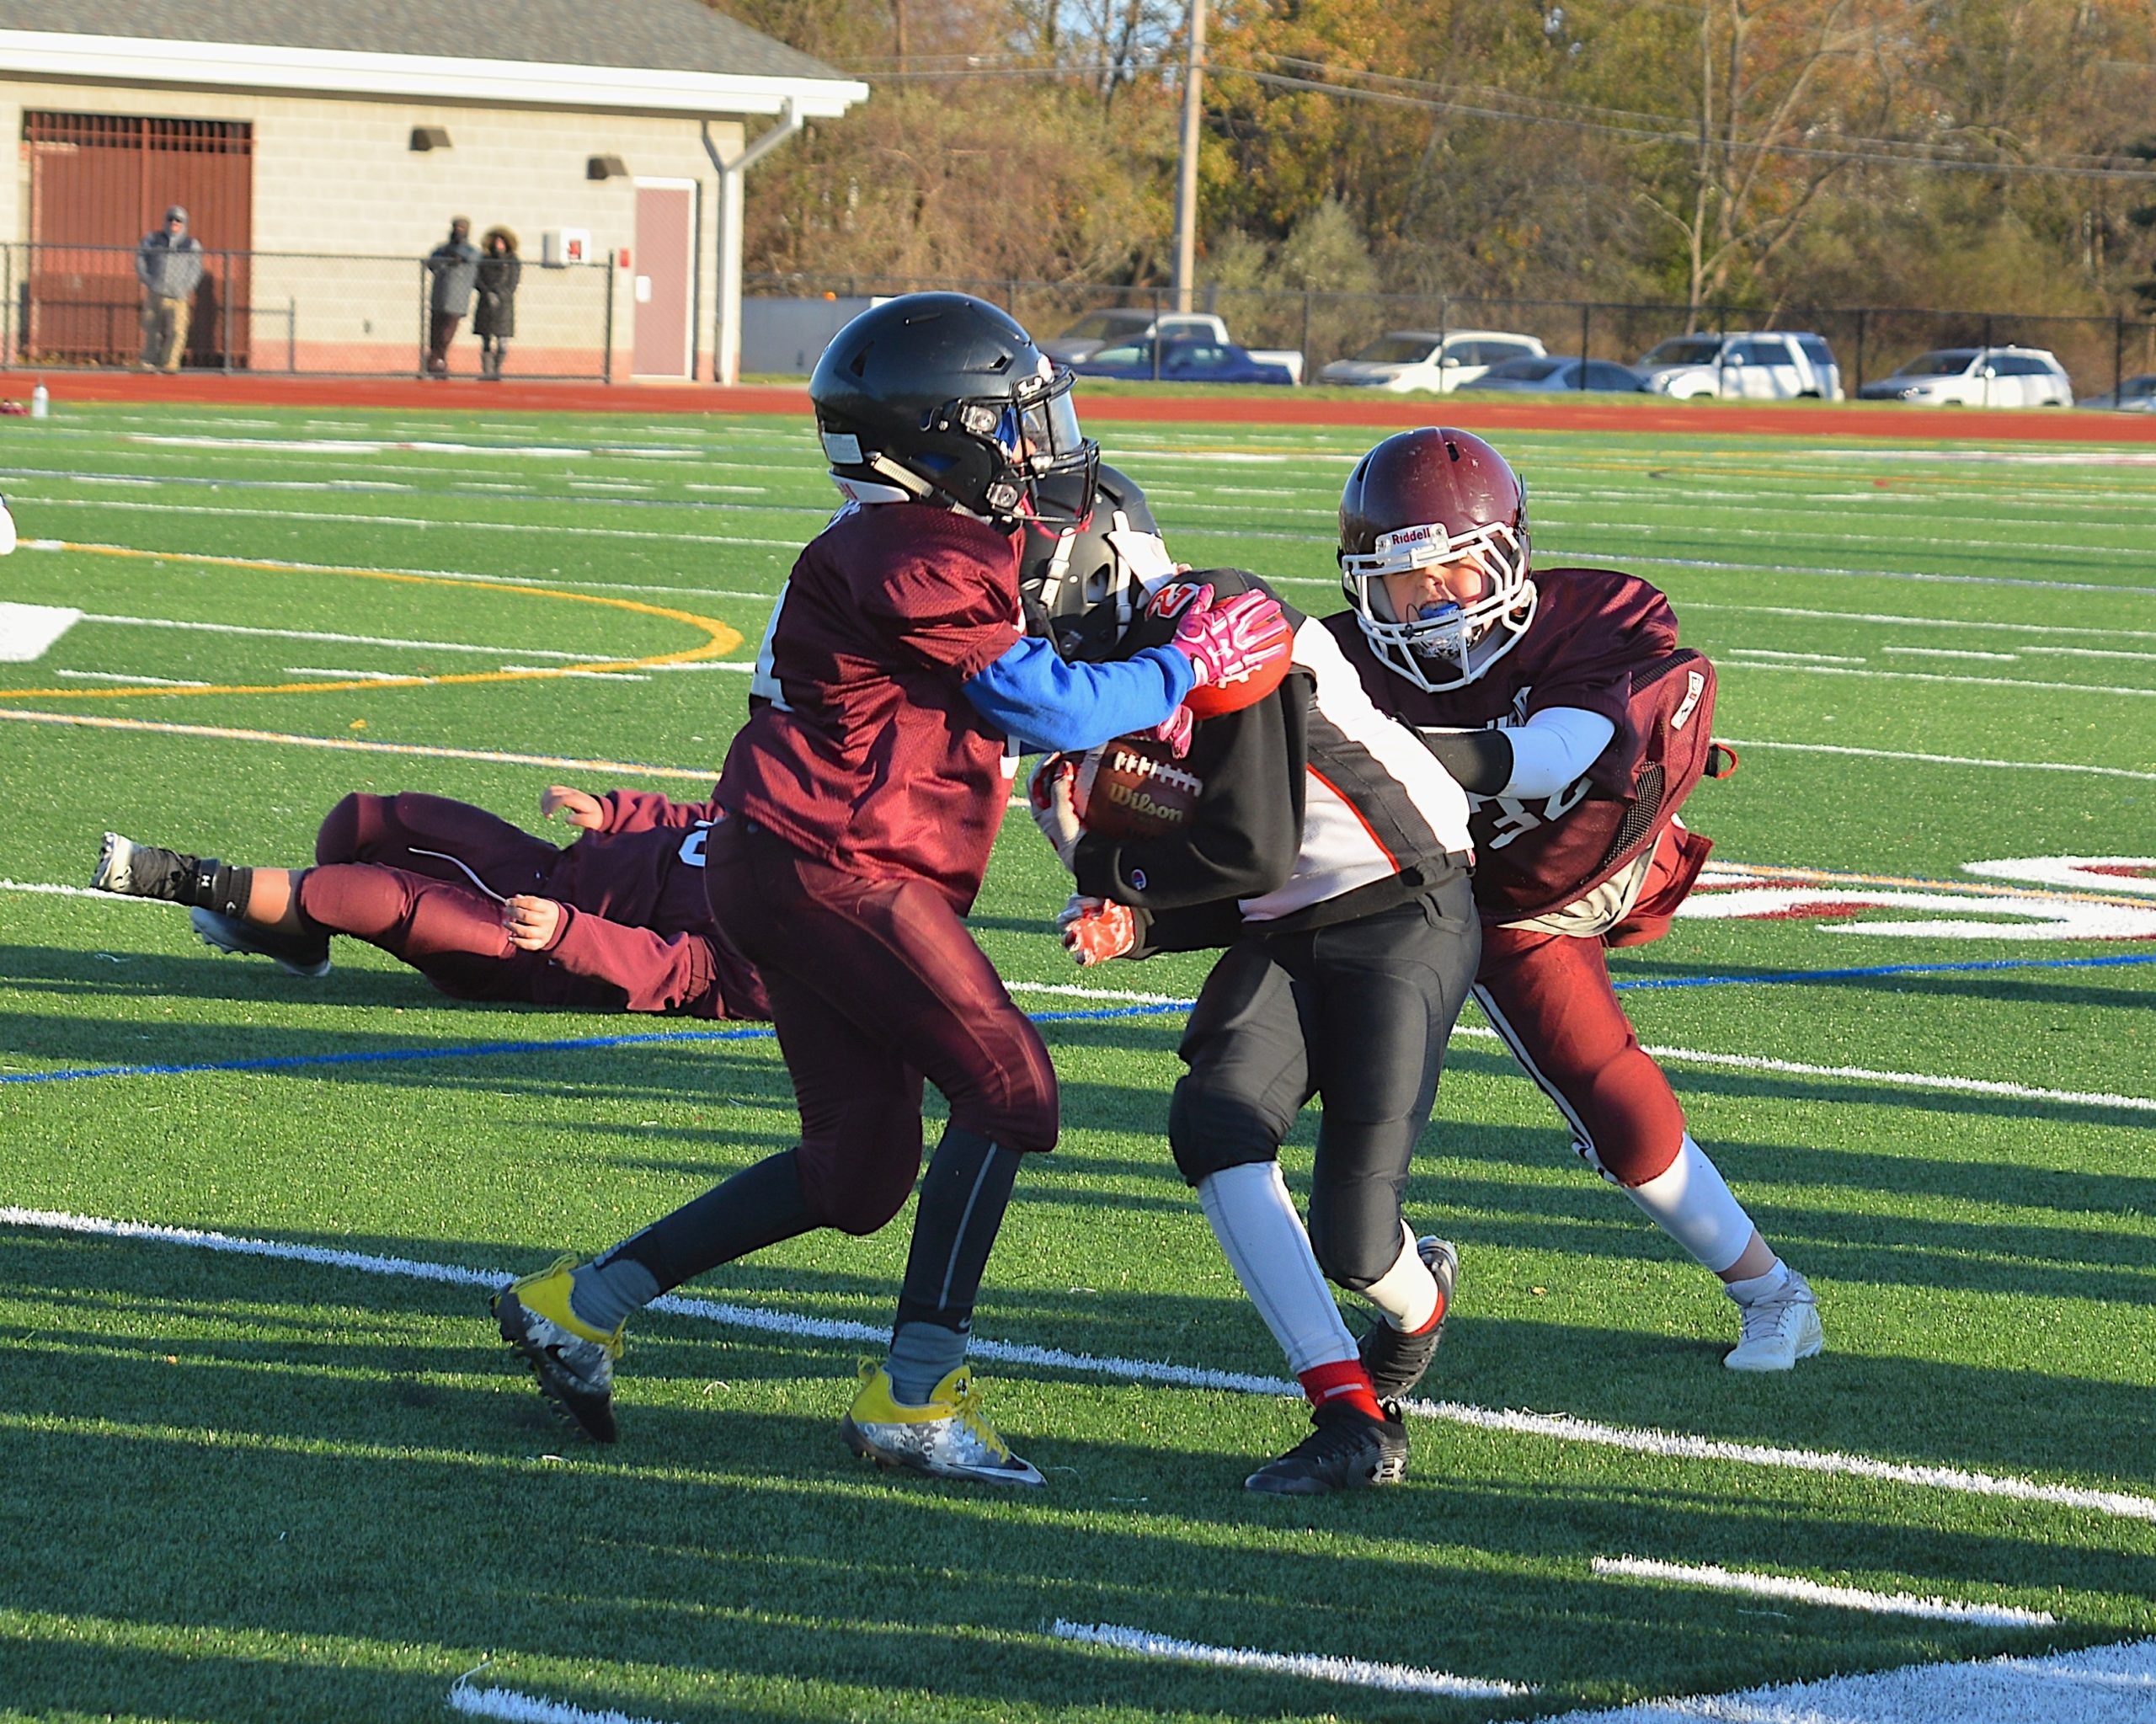 The South Fork P.A.L. team went 9-0 in 2019. Many of those fifth- and sixth-graders are now seventh- and eighth-graders who were expected to provide a strong JV team before it folded due to not having enough players.